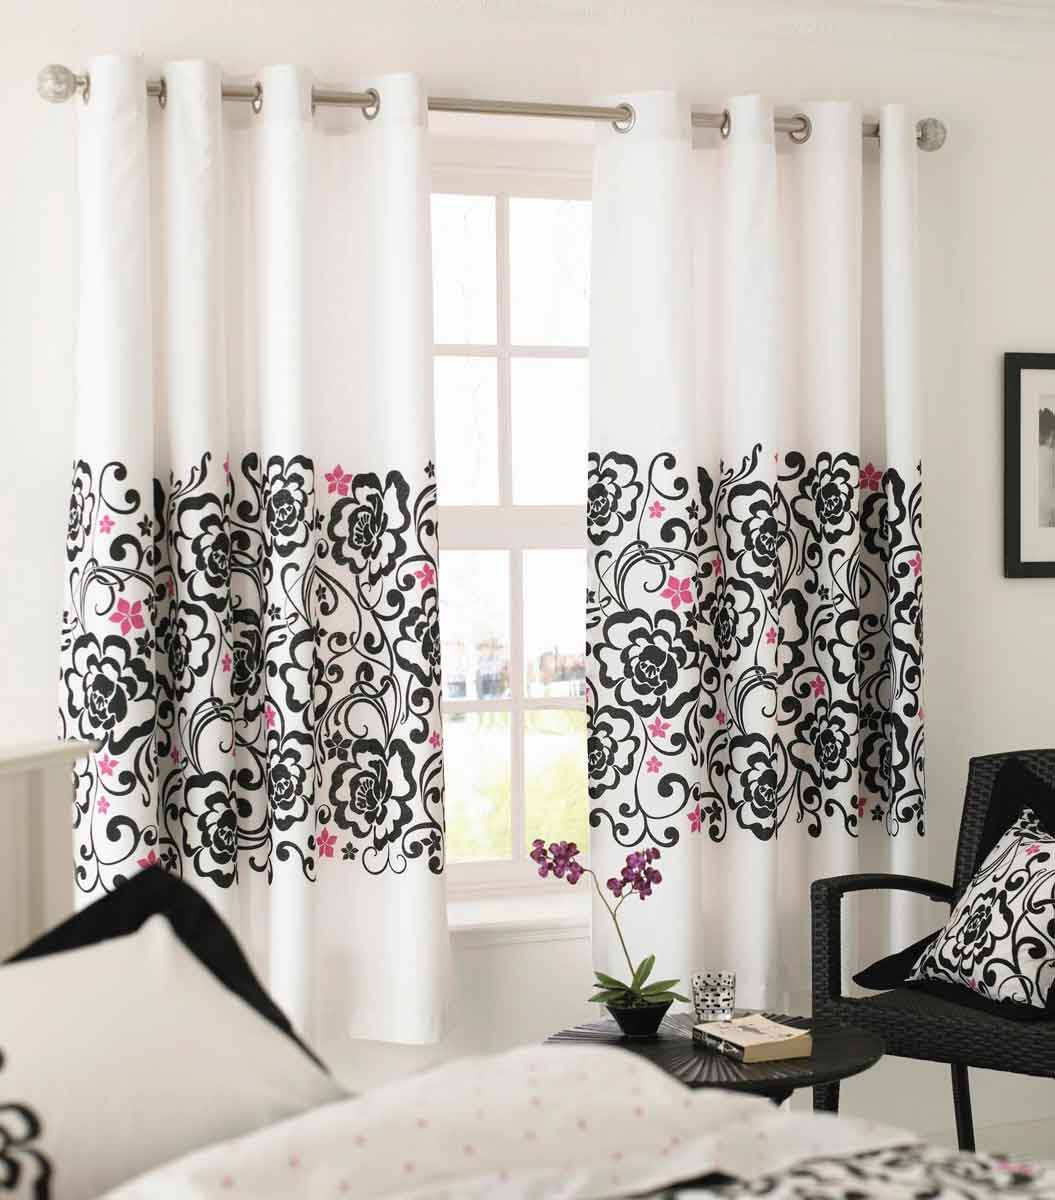 Modern-luxury-white-curtains-with-black-and-pink-flowers